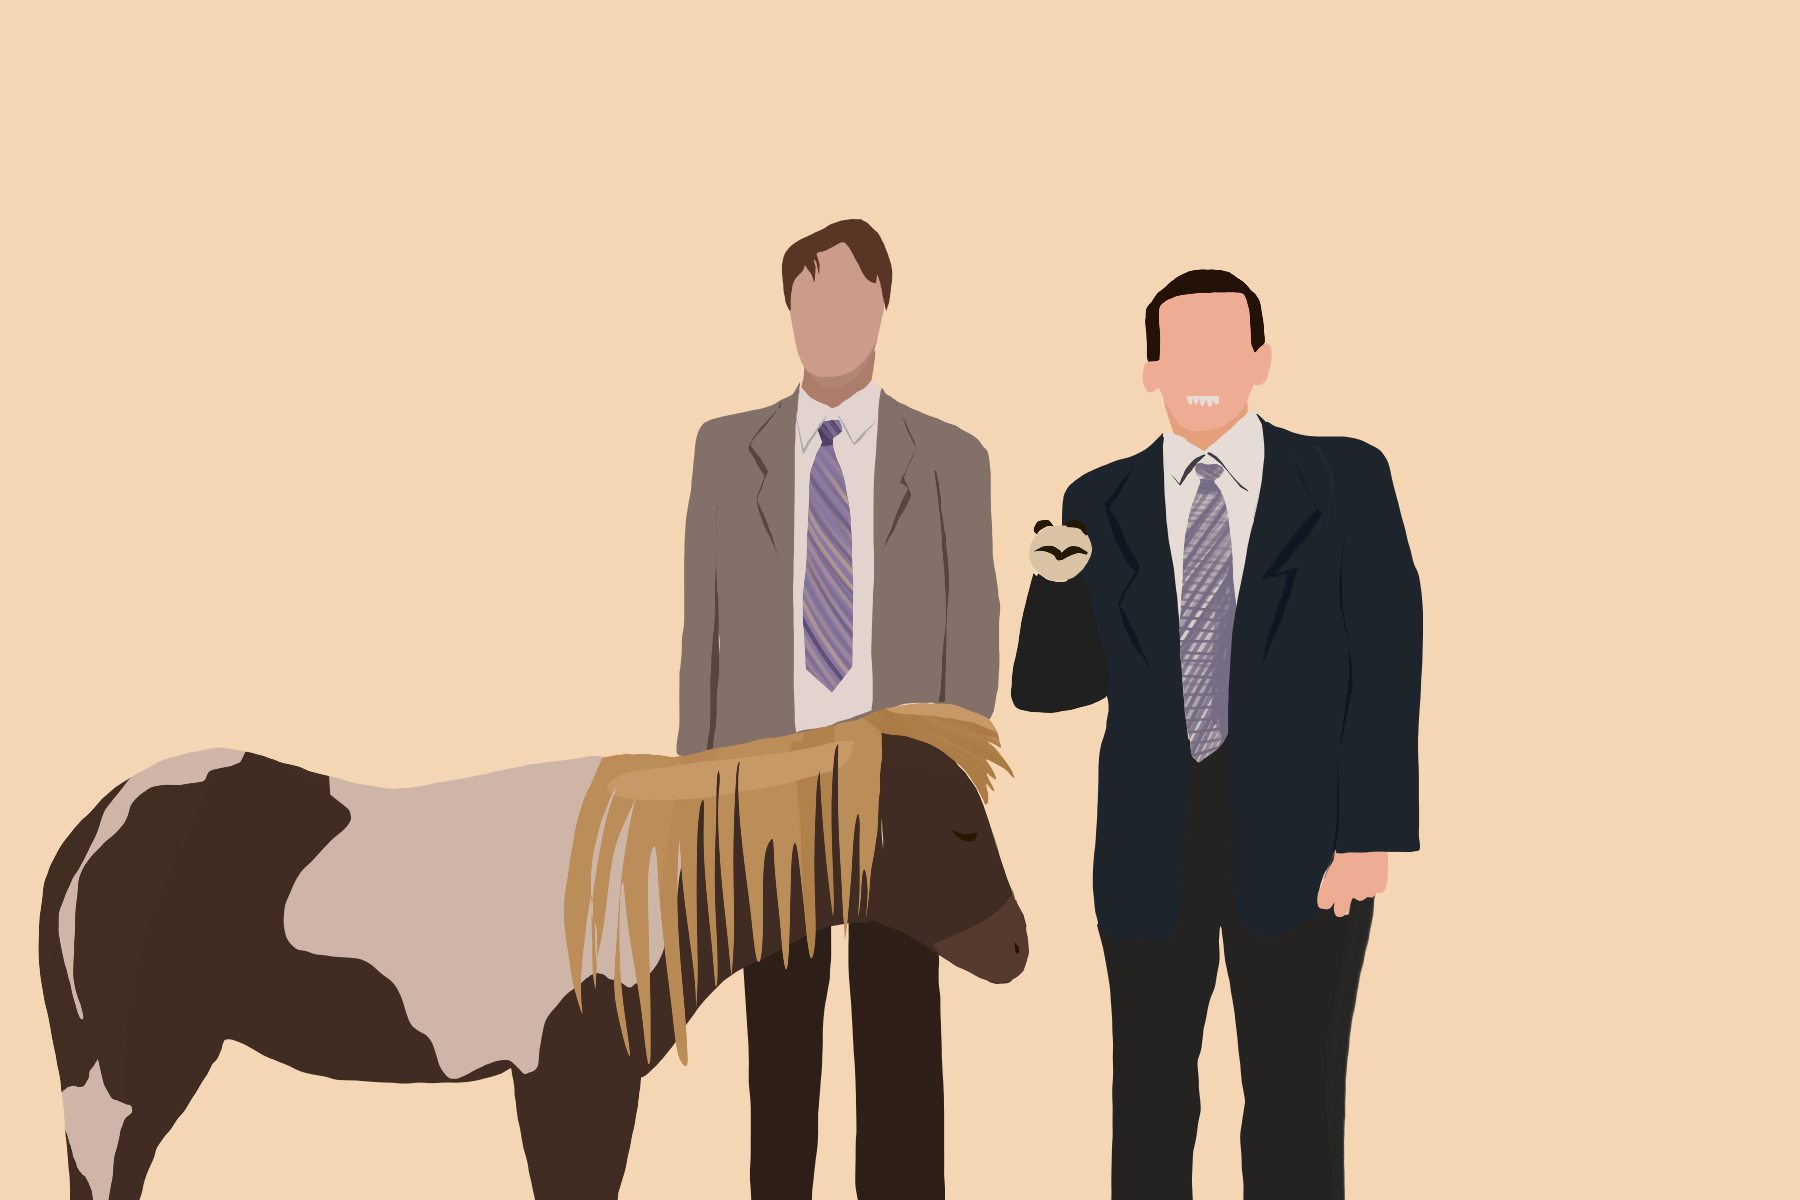 Illustration by Sezi Kaya of The Office characters